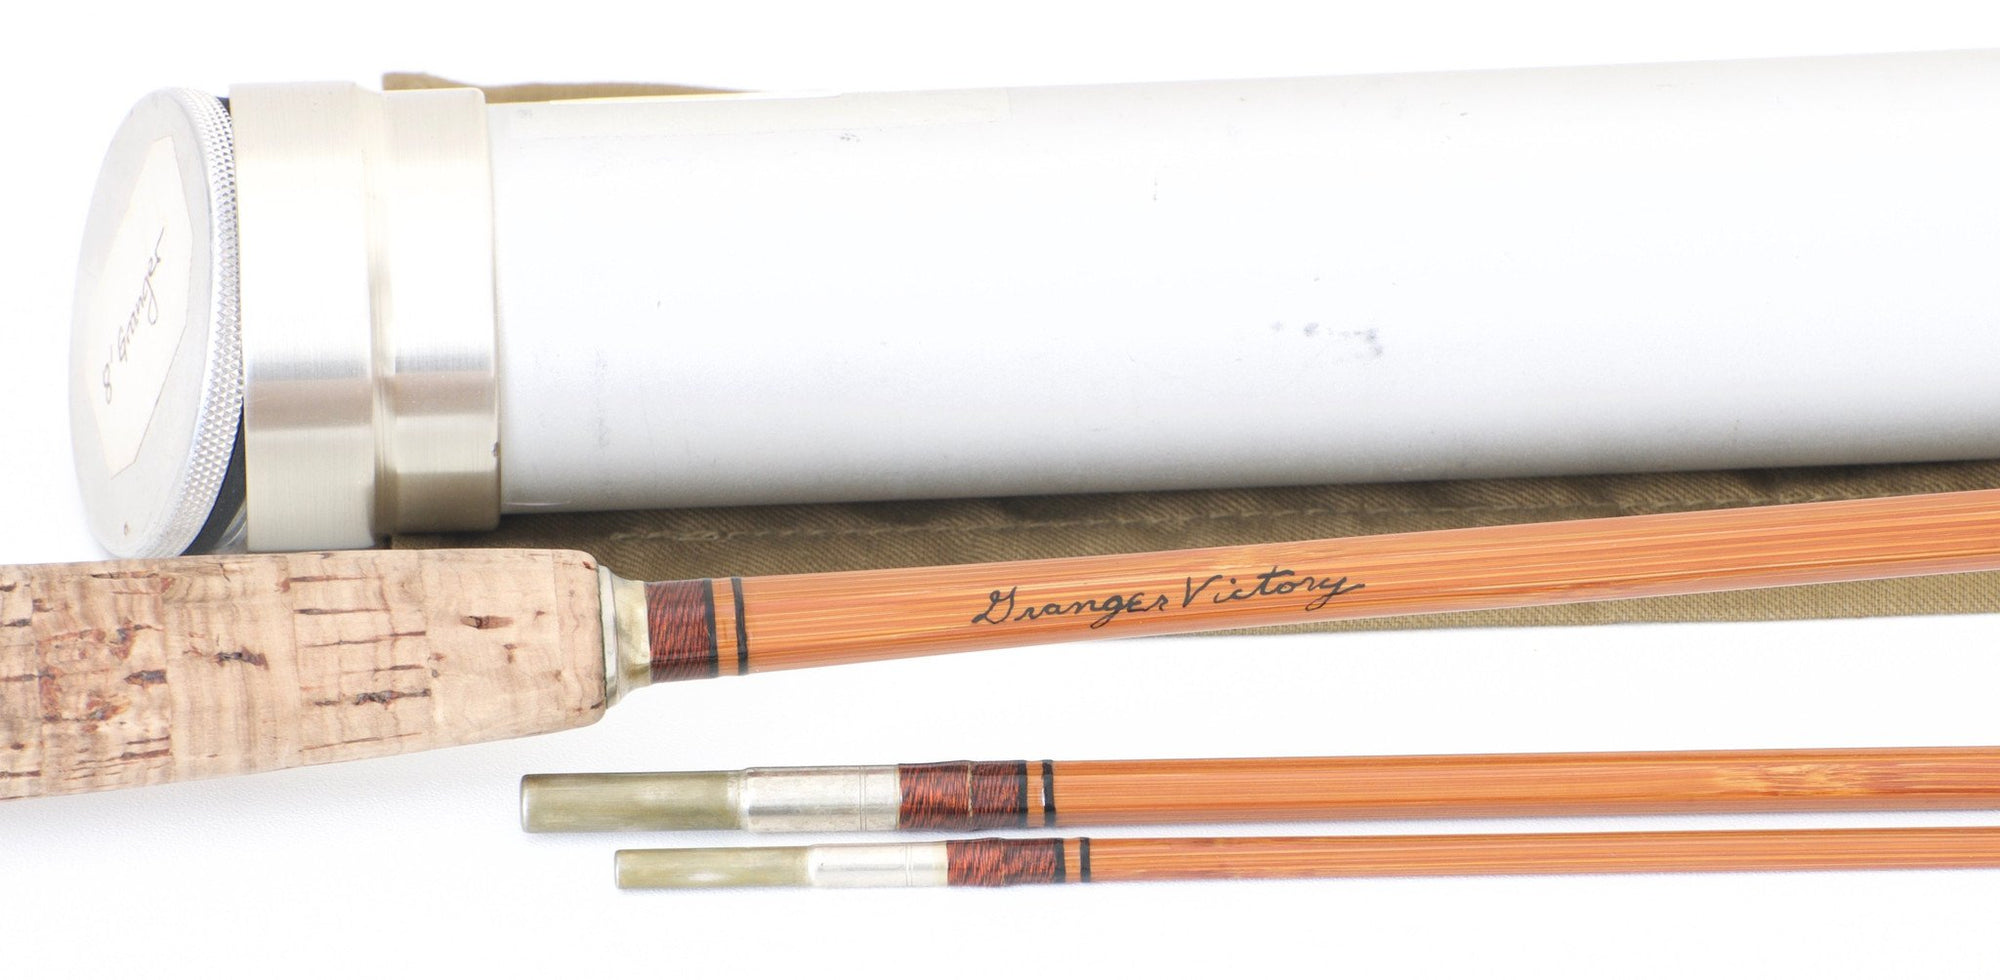 Goodwin Granger Victory Model 8040 Bamboo Rod